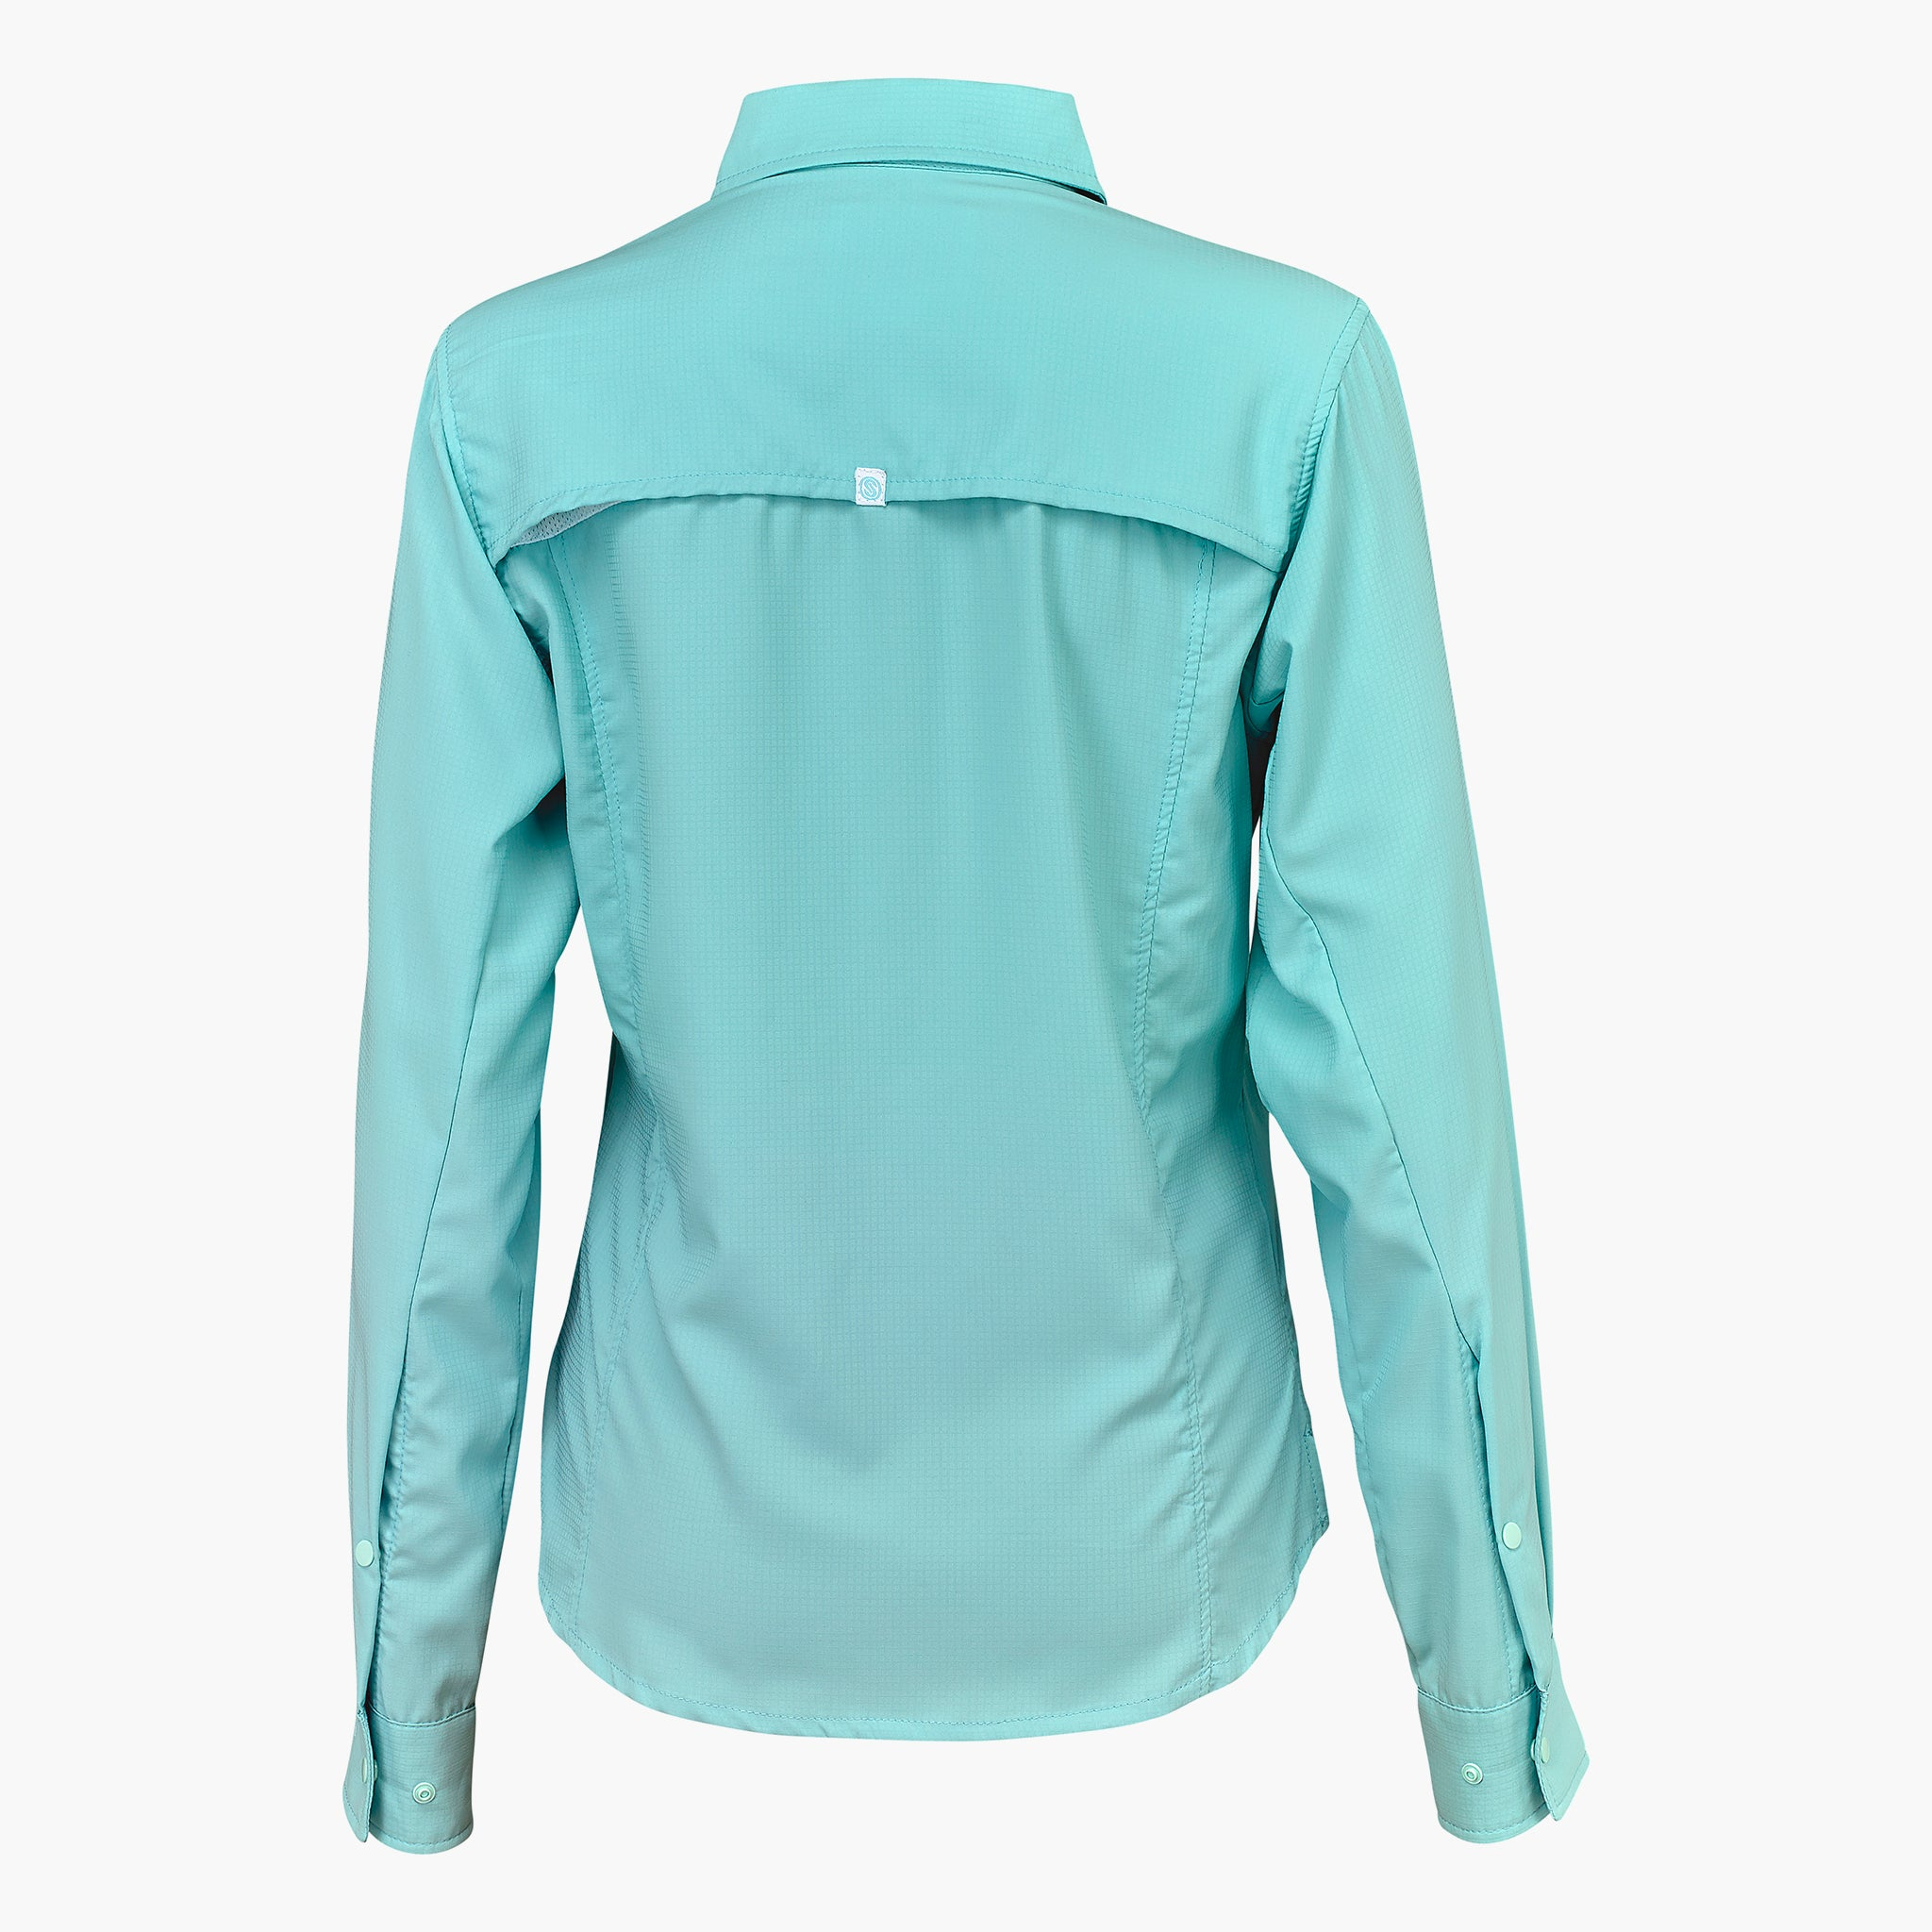 Slack Tide Womens Performance Guide Shirt White Aruba Blue